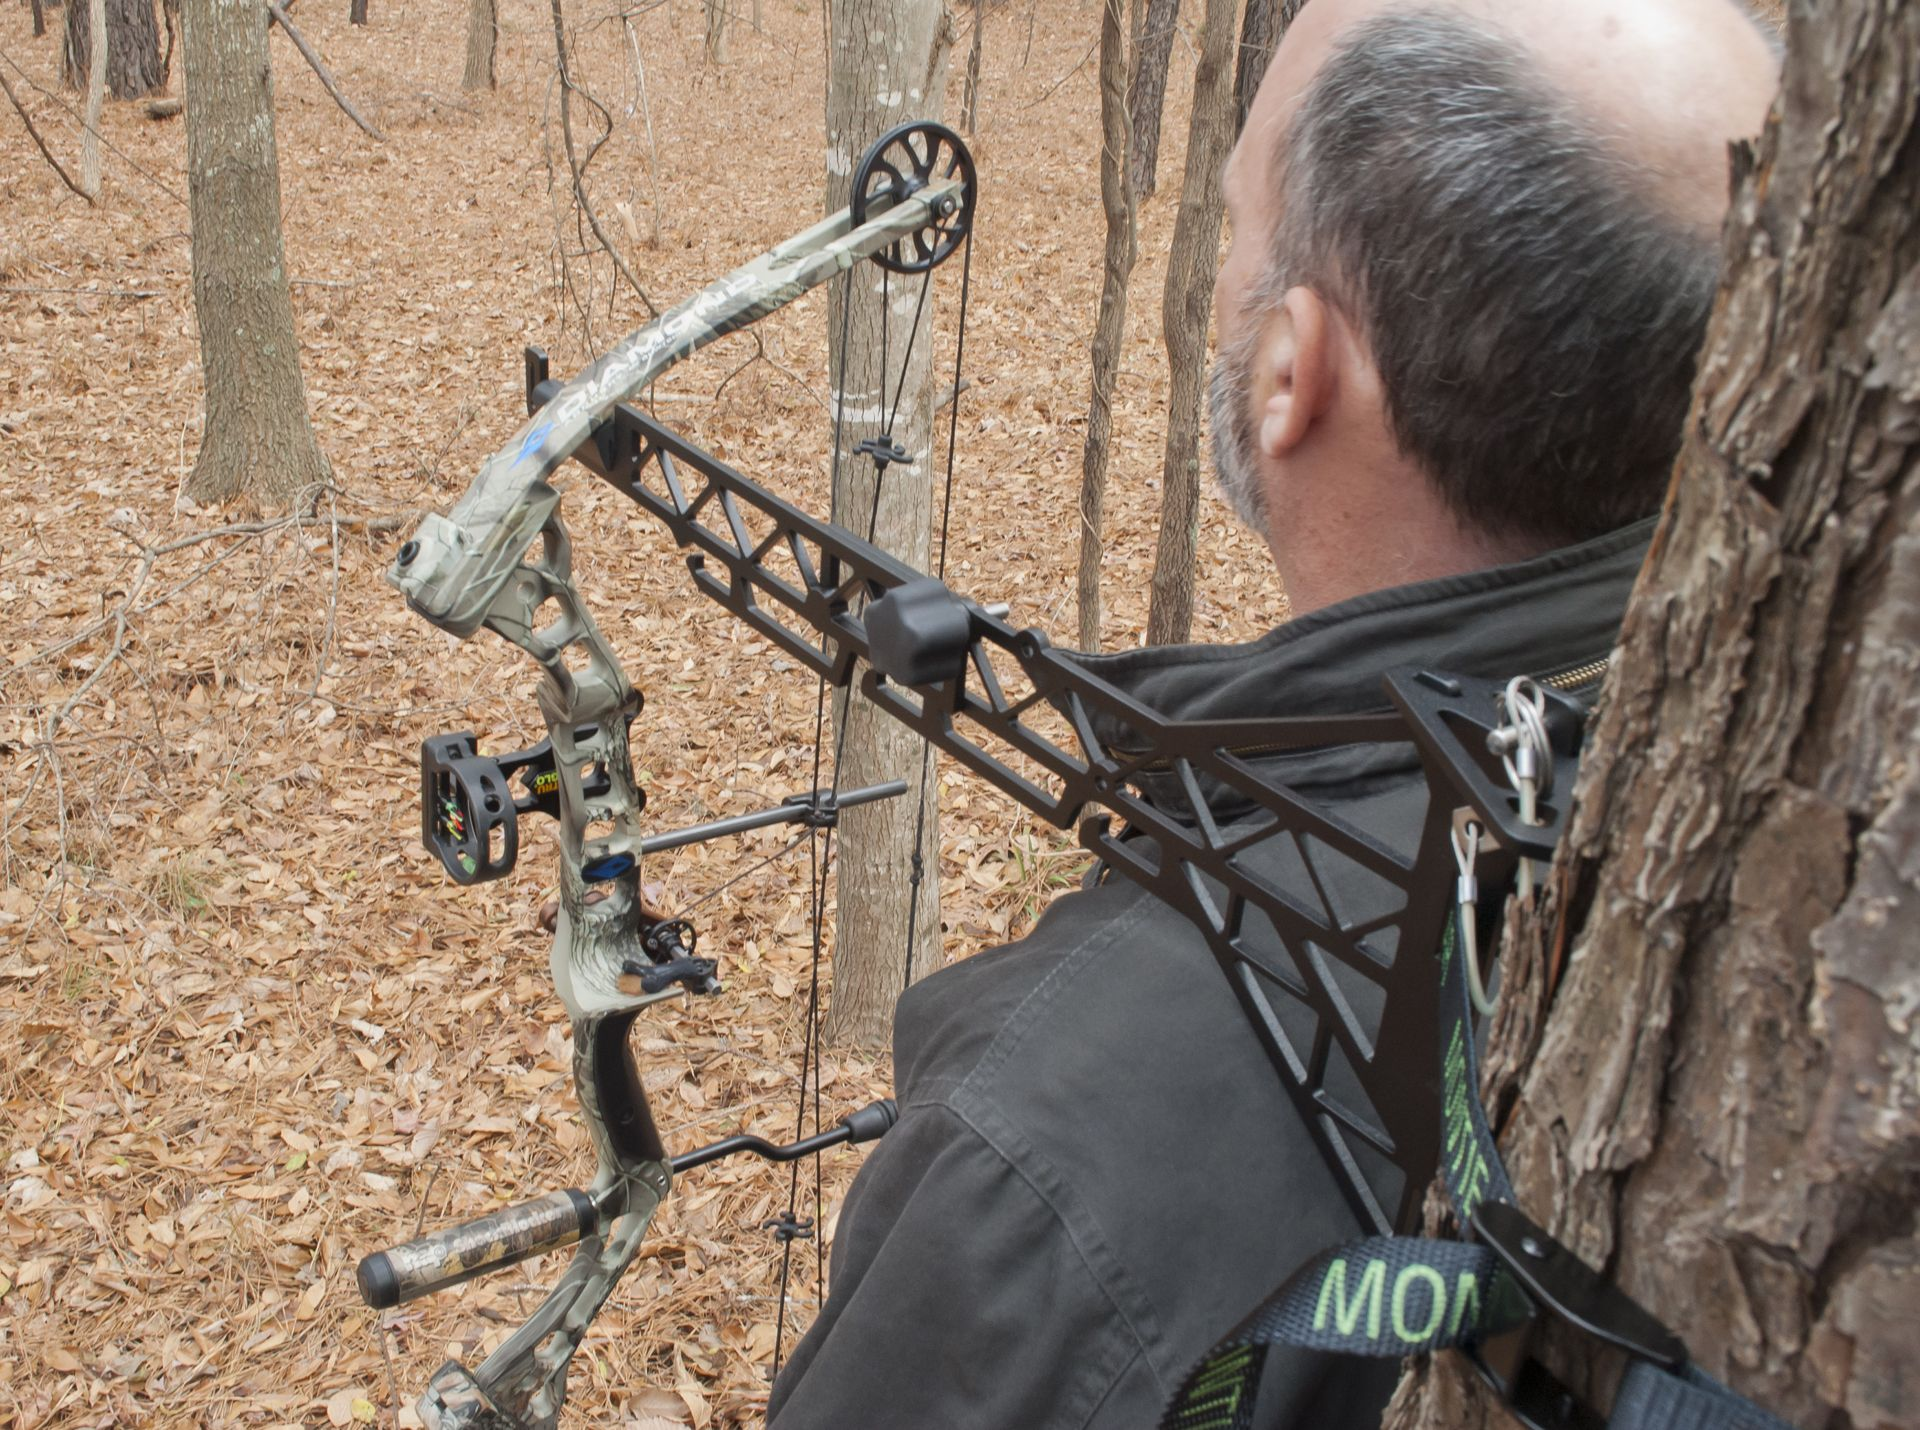 Hunter's Friend holding bow in ready position